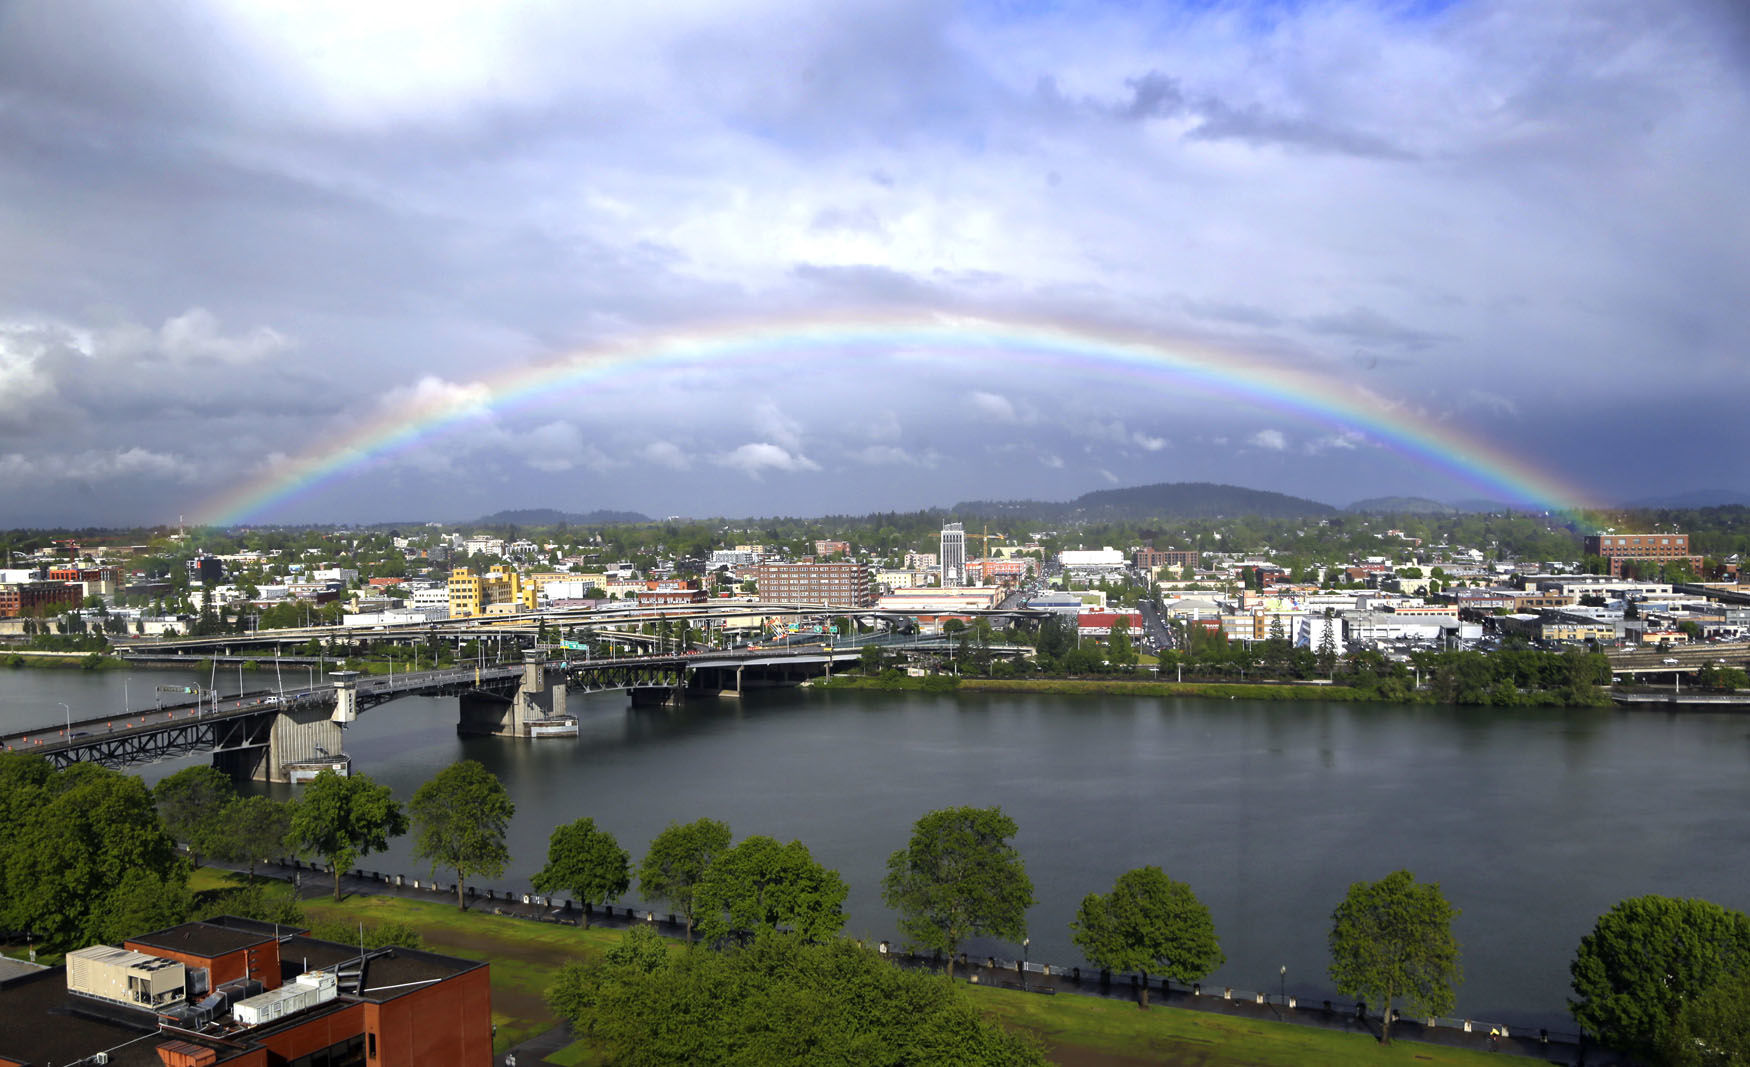 A rainbow pops out under dark rain clouds over the Willamette River in downtown Portland, Ore., Thursday, May 11, 2017. (AP Photo/Don Ryan)